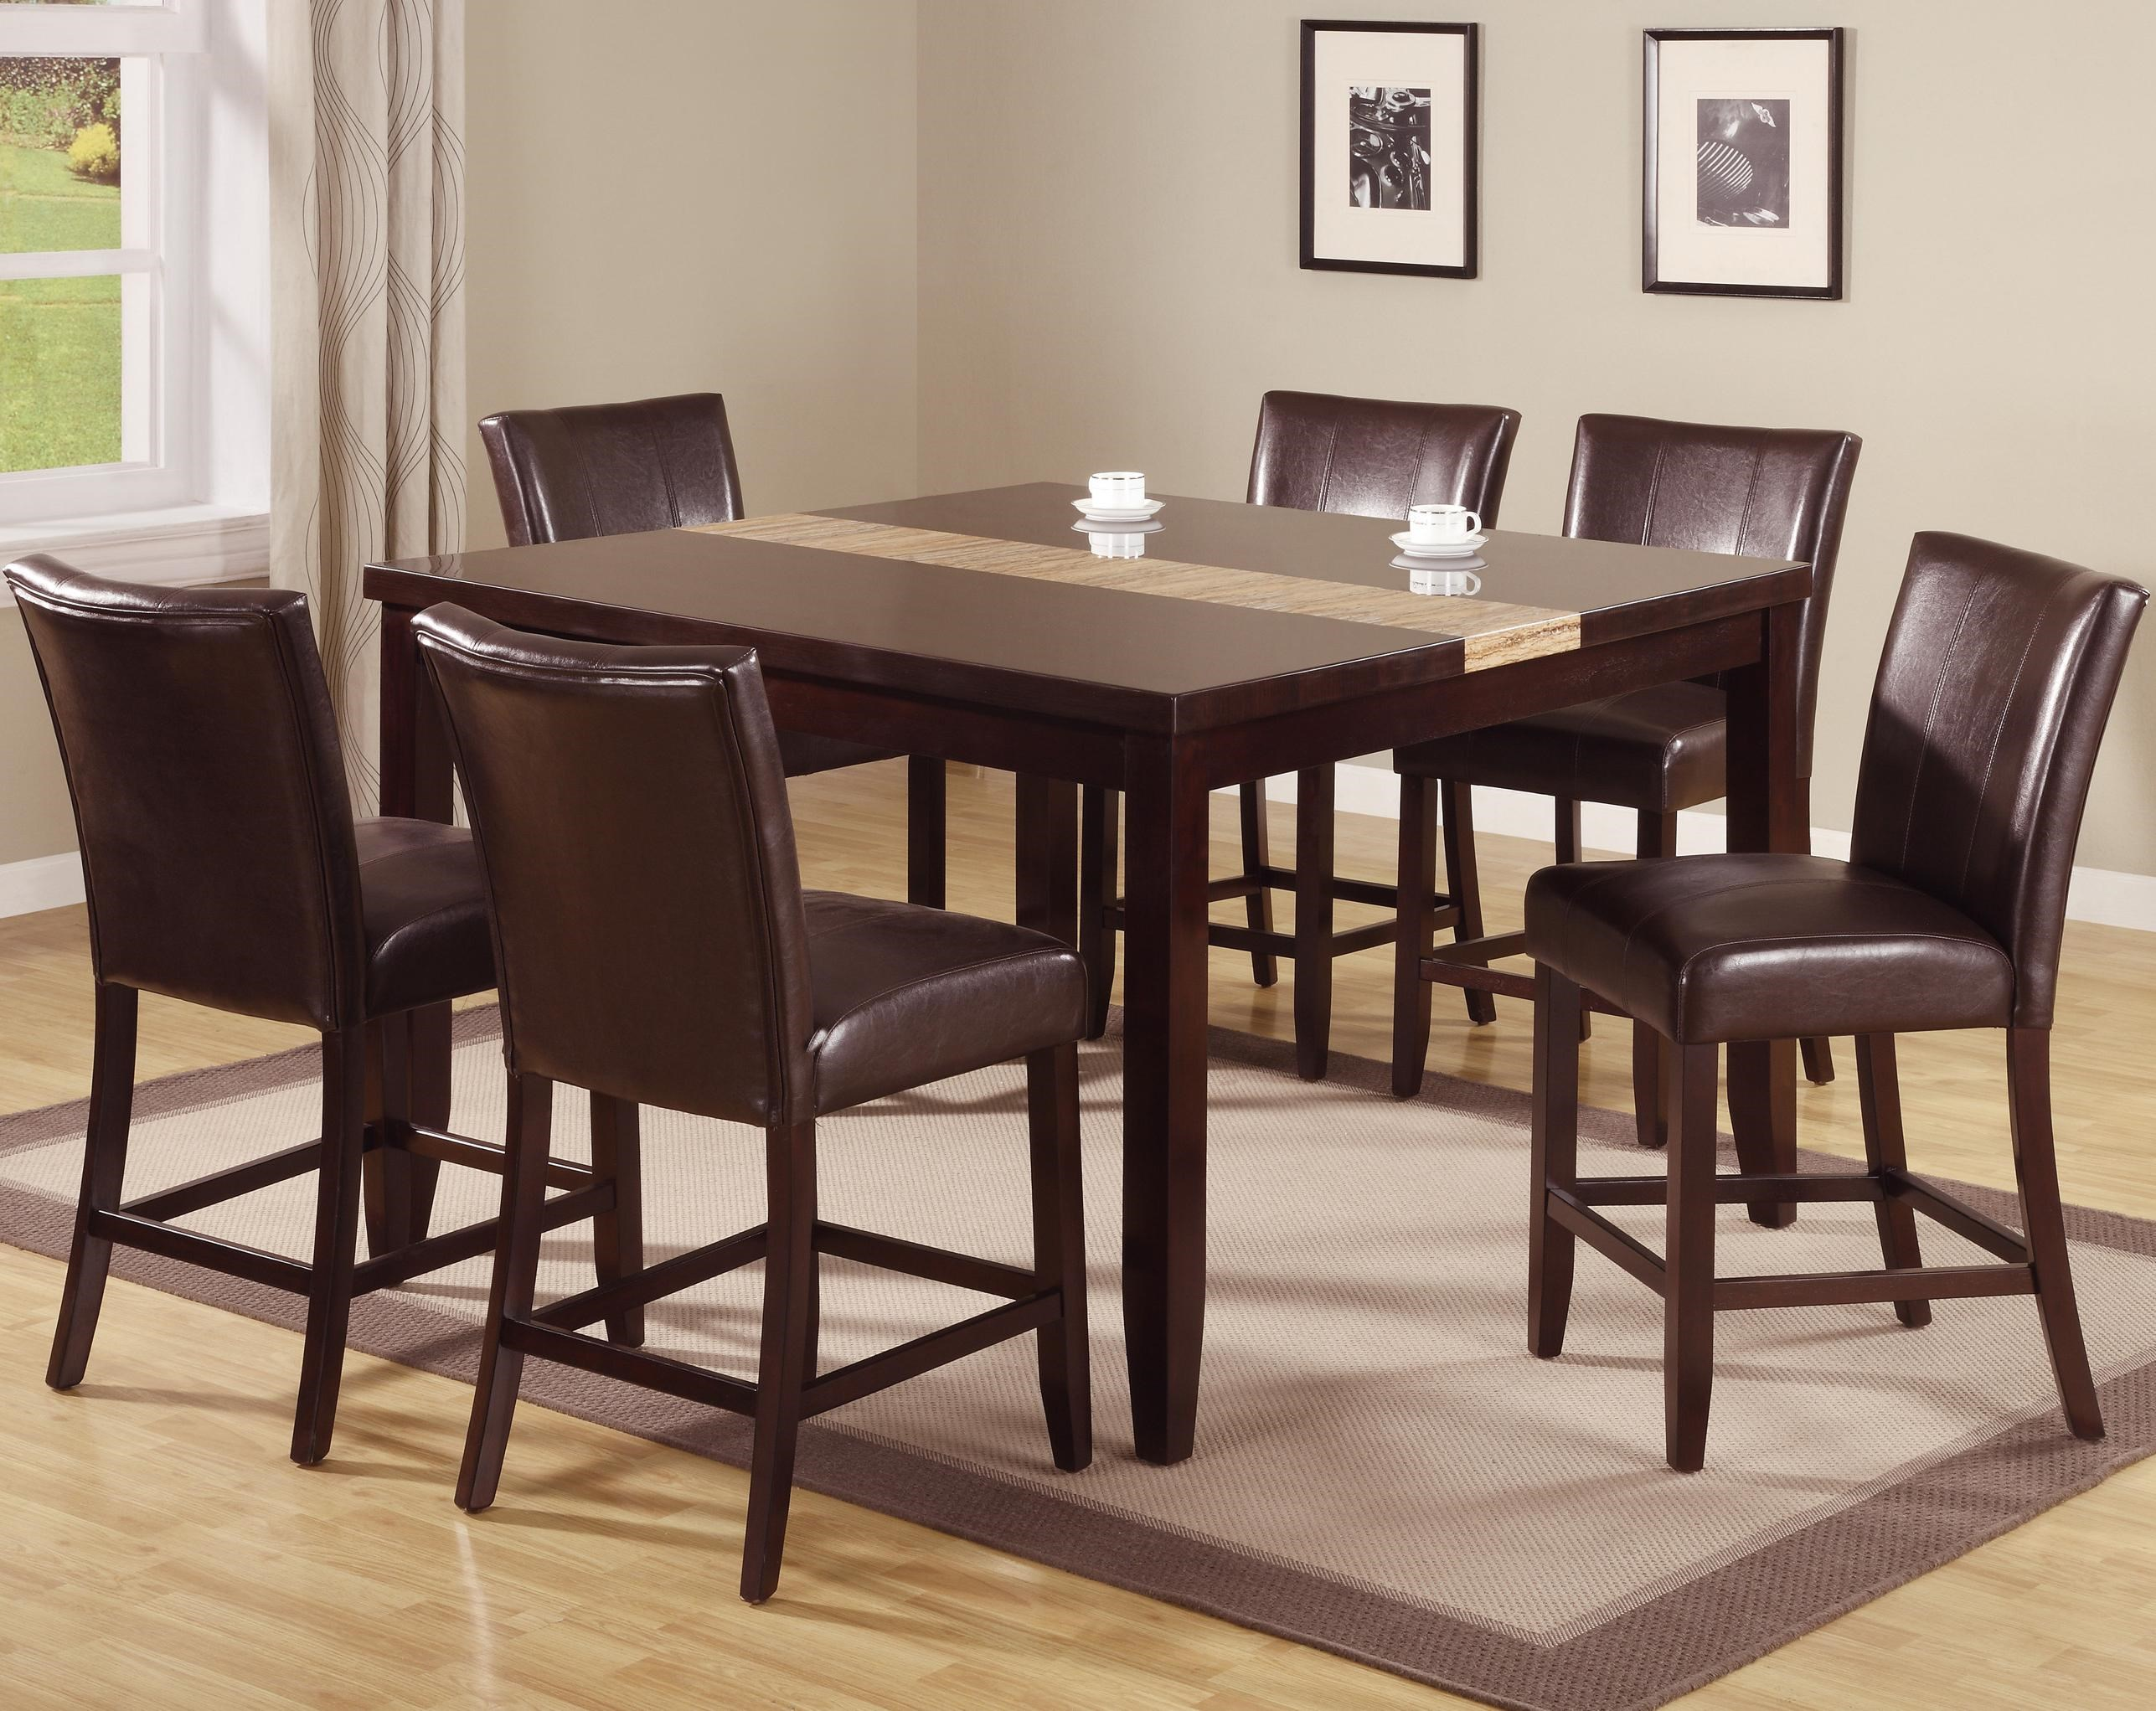 Crown Mark Madrid \u0026 Ferrara 7 Piece Pub Table Set with Upholstered Counter Chairs & Crown Mark Madrid \u0026 Ferrara 7 Piece Pub Table Set with Upholstered ...